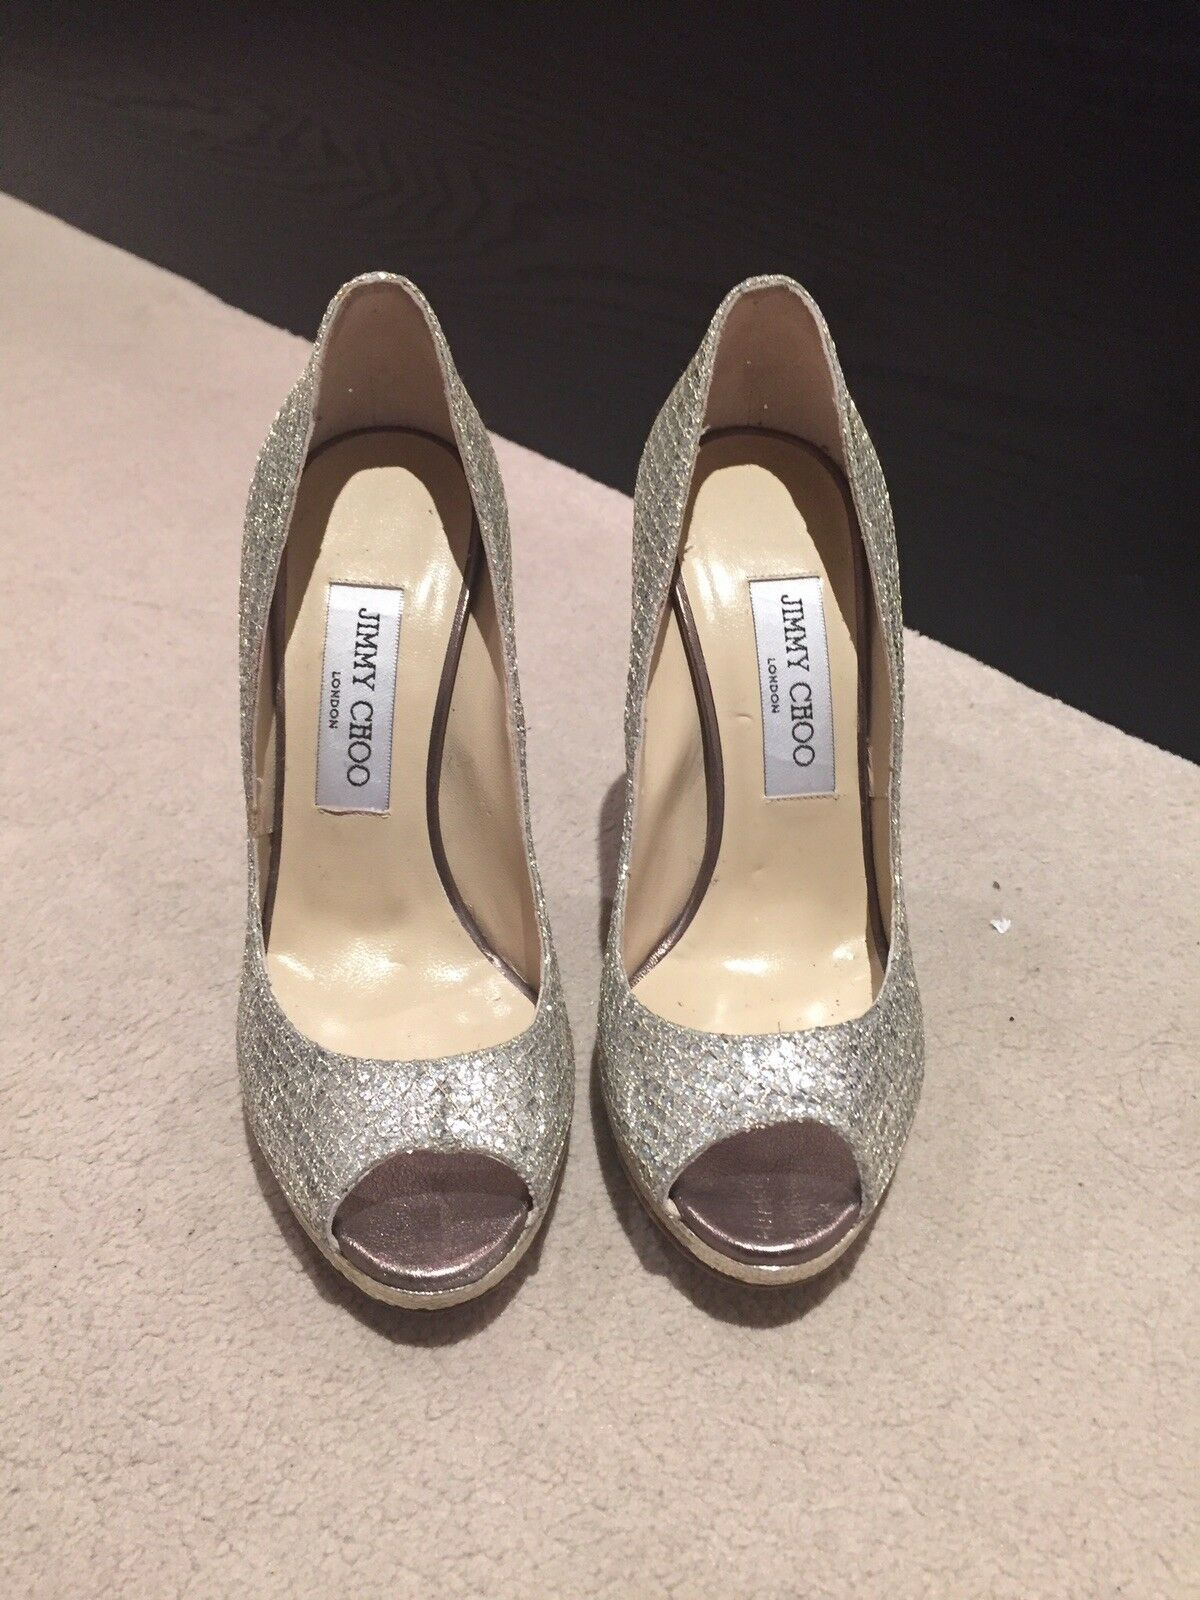 Brand new (worn once) Jimmy Choo high heel glitter gold sandal shoes size 37